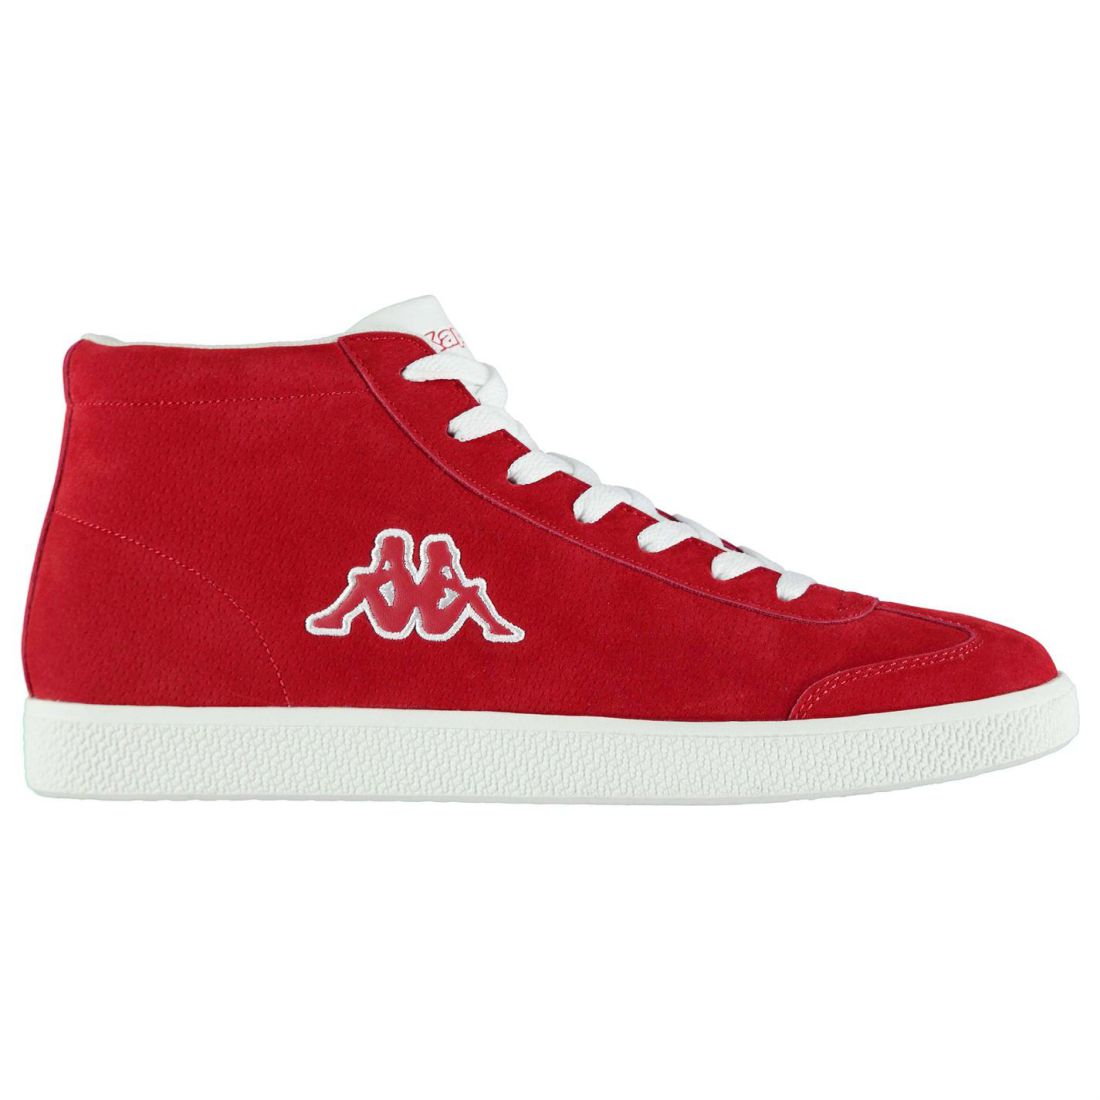 d49fa5a1c3 Details about Kappa Mens Sole Mid Trainers Low Lace Up Comfortable Fit Suede